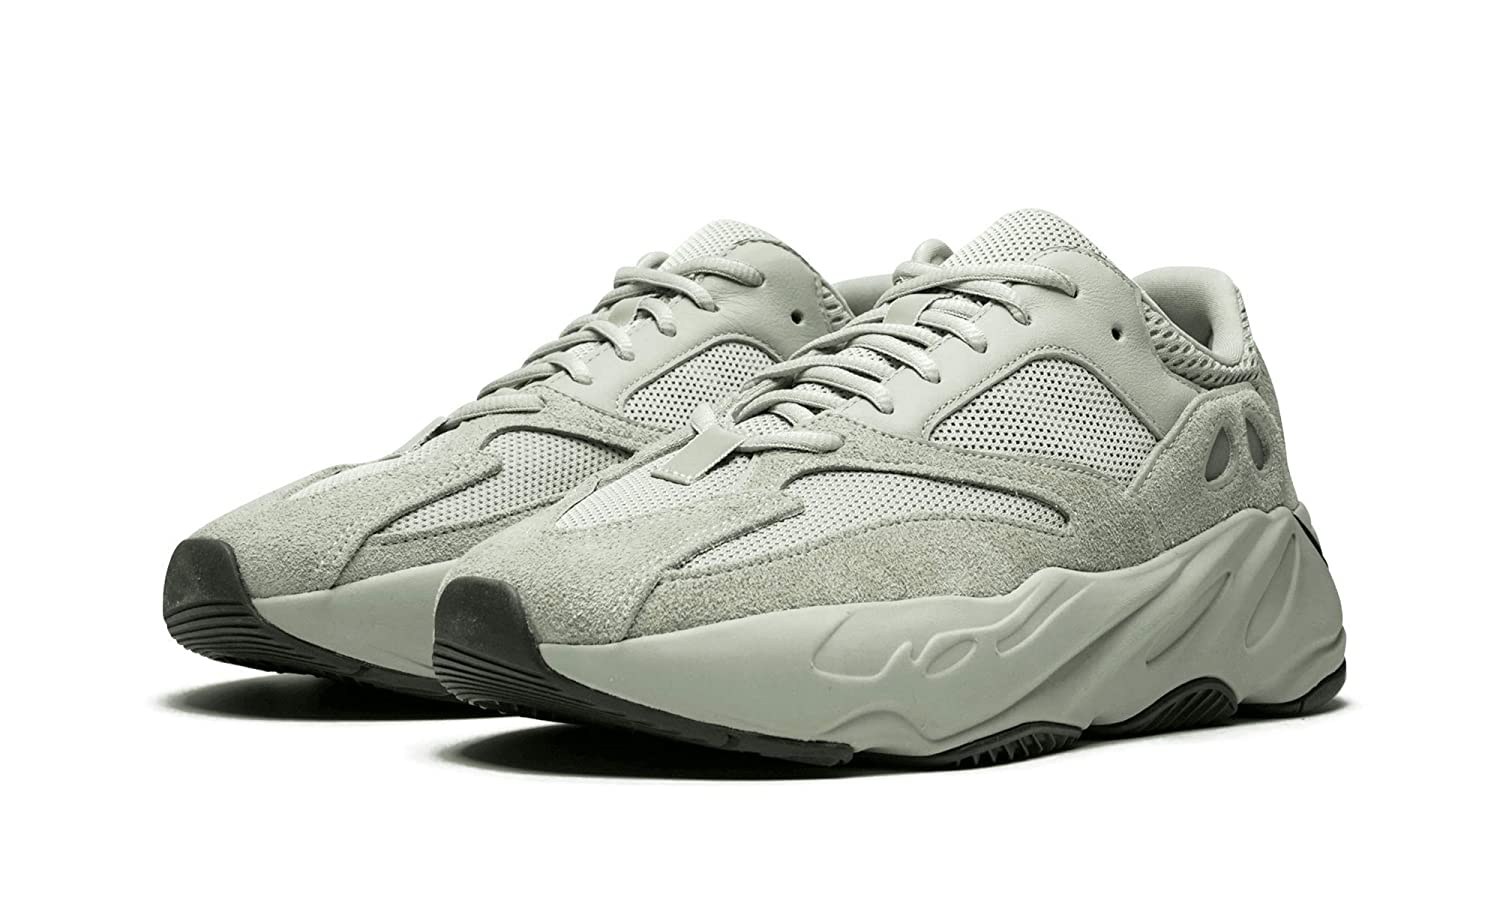 info for 98cee ed0d7 Amazon.com | adidas Yeezy Boost 700 (Salt/Salt, 6.5 ...